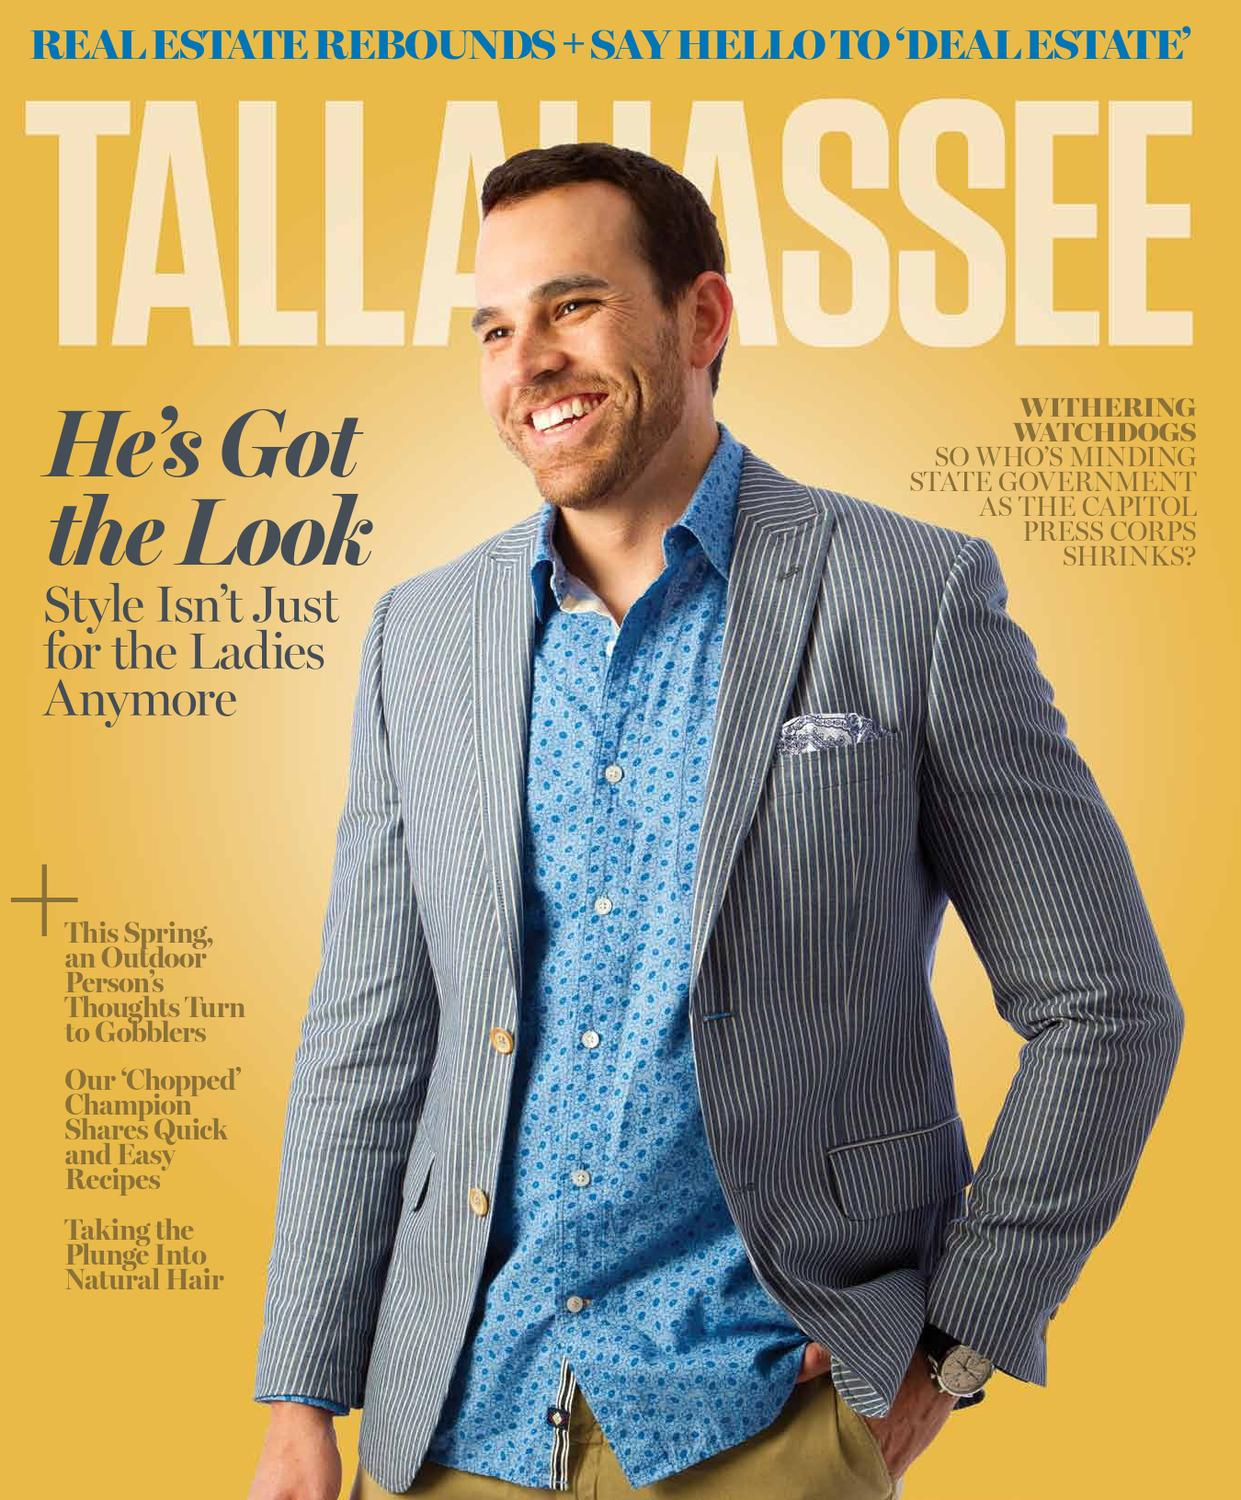 Tallahassee Magazine - March/April 2013 by Rowland Publishing, Inc. - issuu